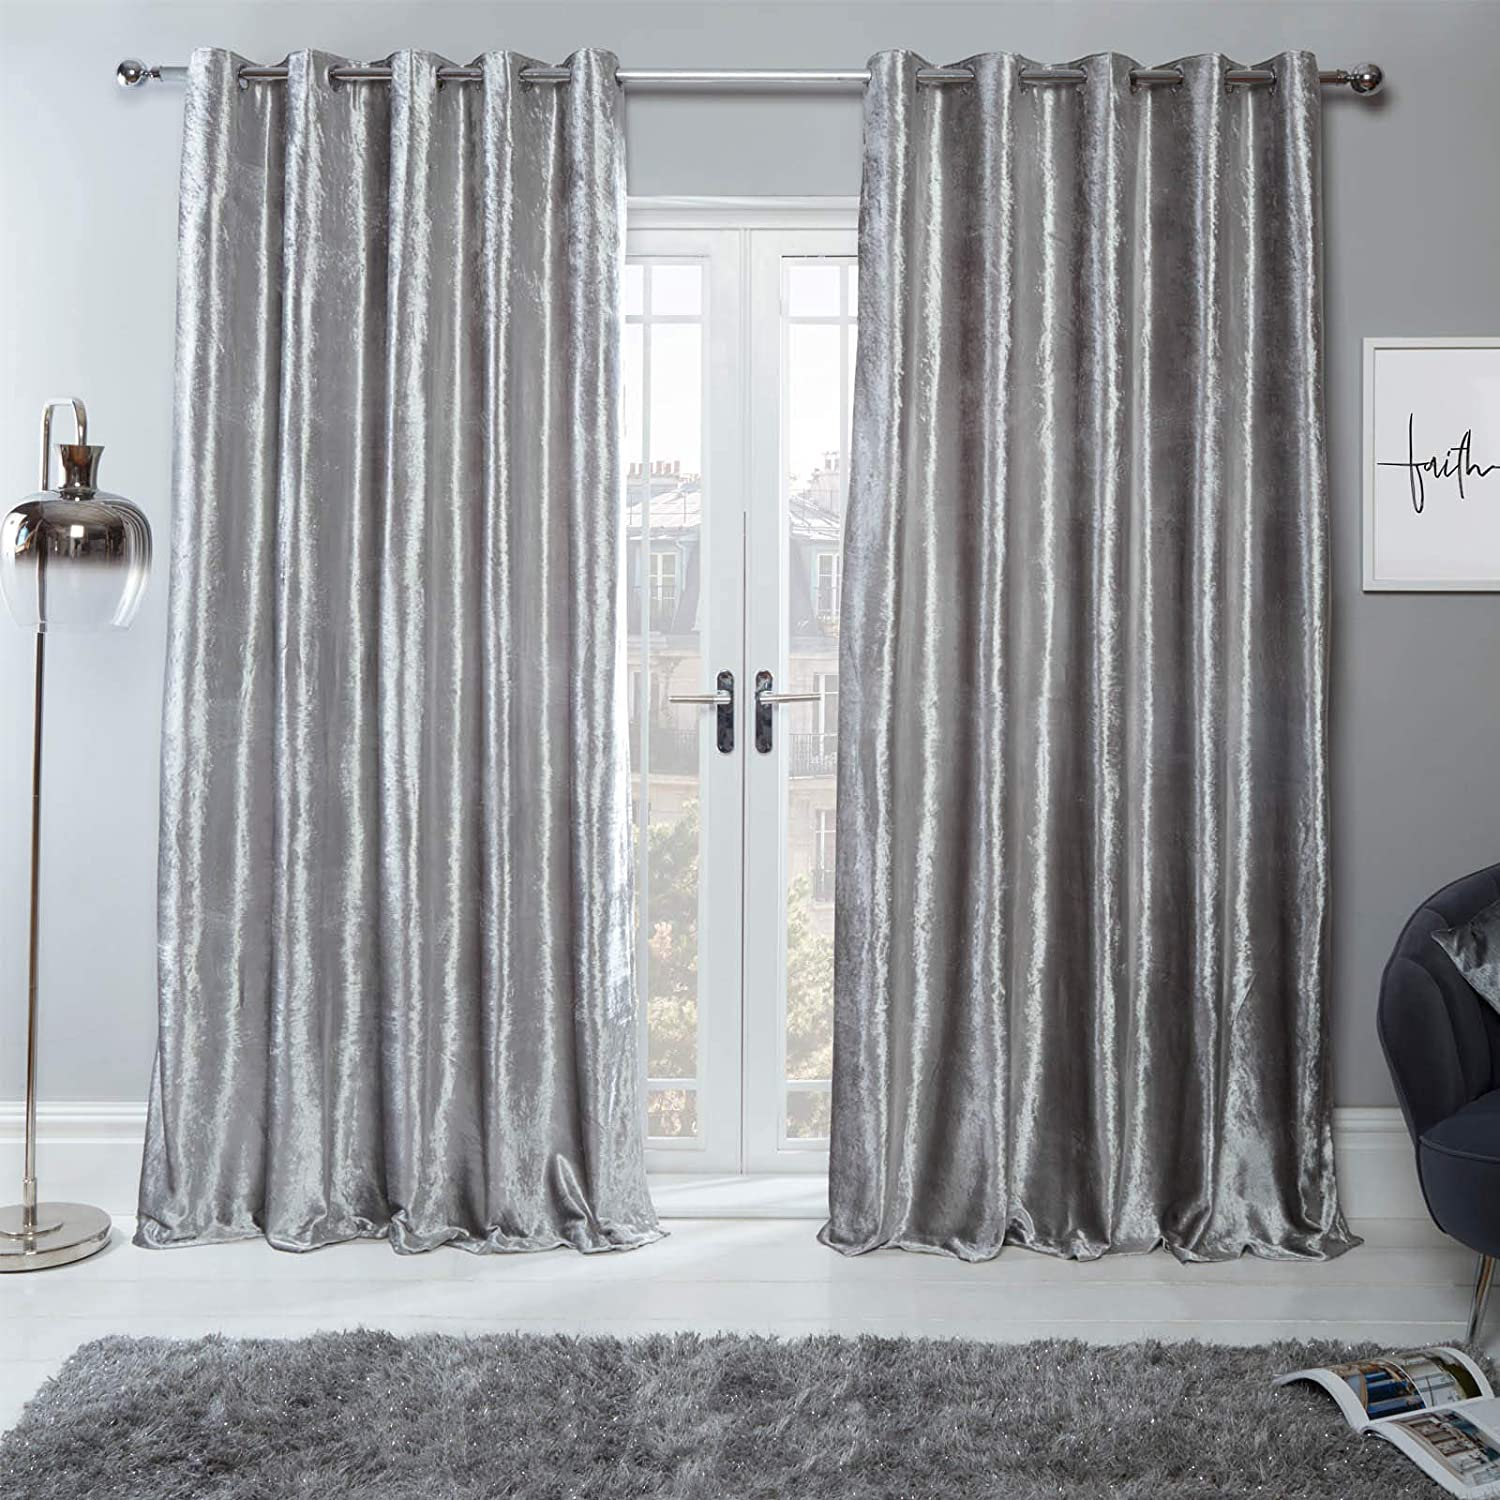 Sienna Crushed Velvet Eyelet Ring Top Pair Of Fully Lined Curtains Silver 90 X 90 Amazon Co Uk Kitchen Home